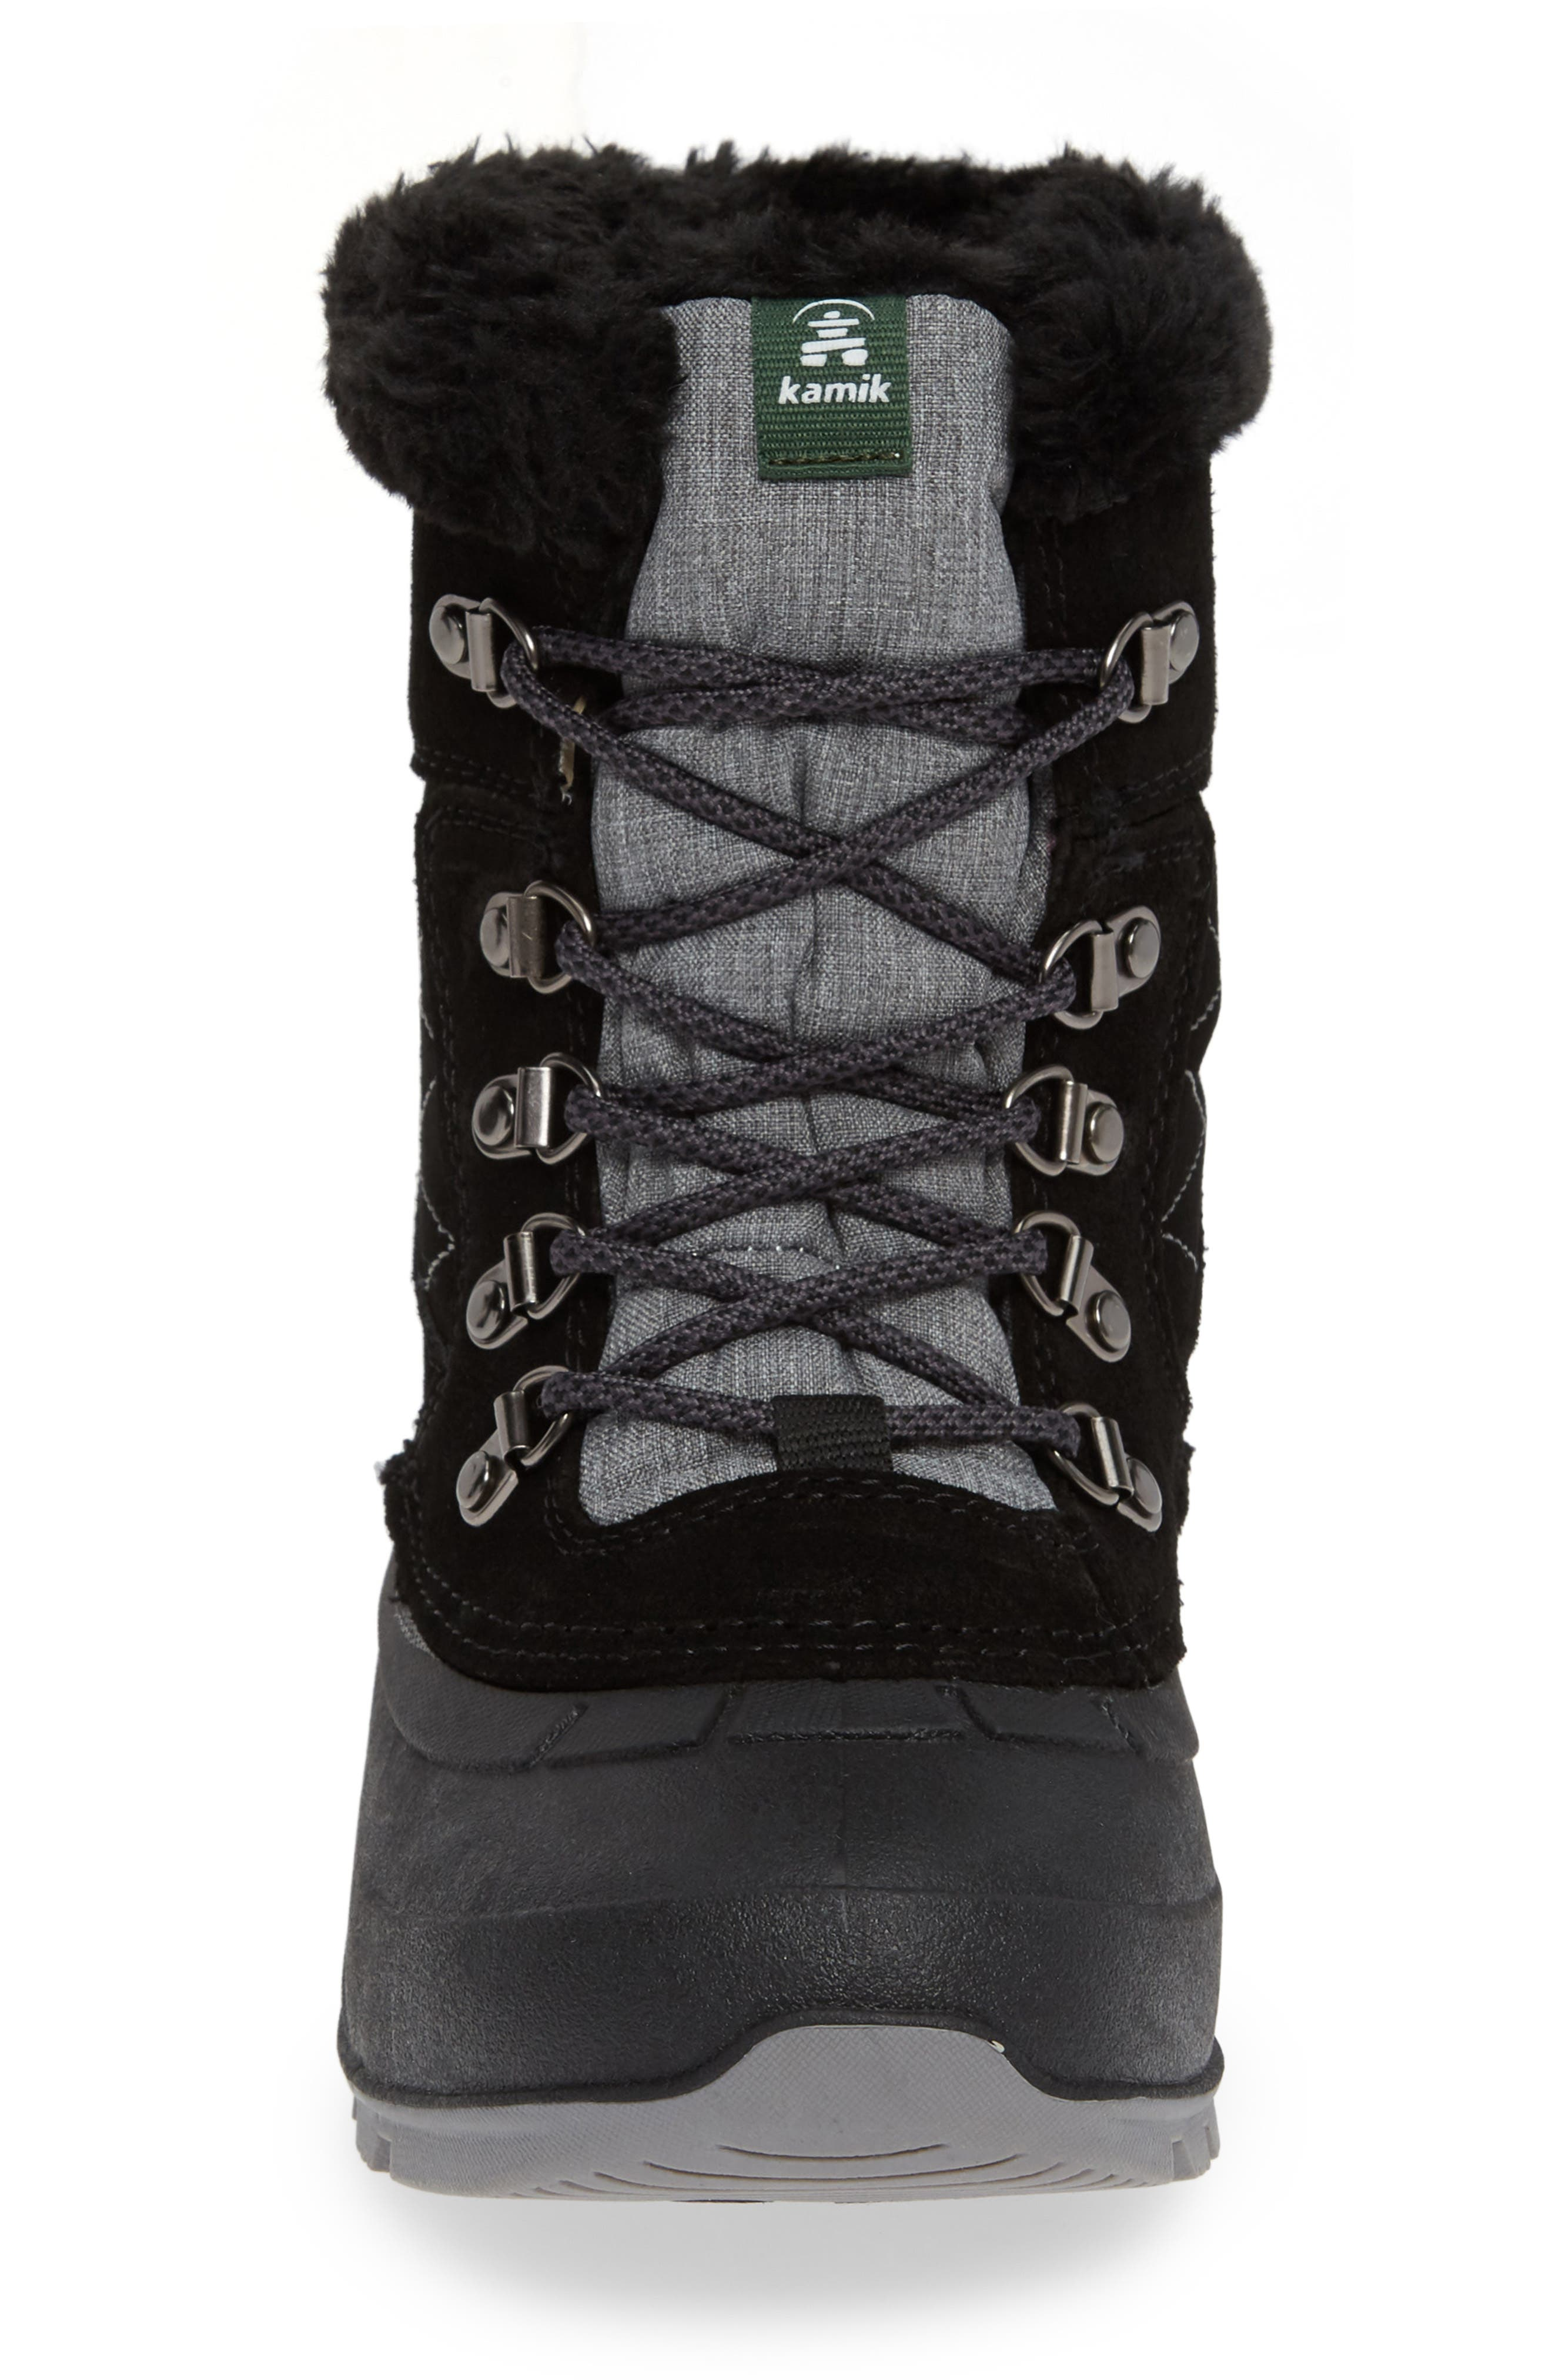 KAMIK, Snovalley1 Waterproof Thinsulate<sup>®</sup> Insulated Snow Boot, Alternate thumbnail 4, color, 001